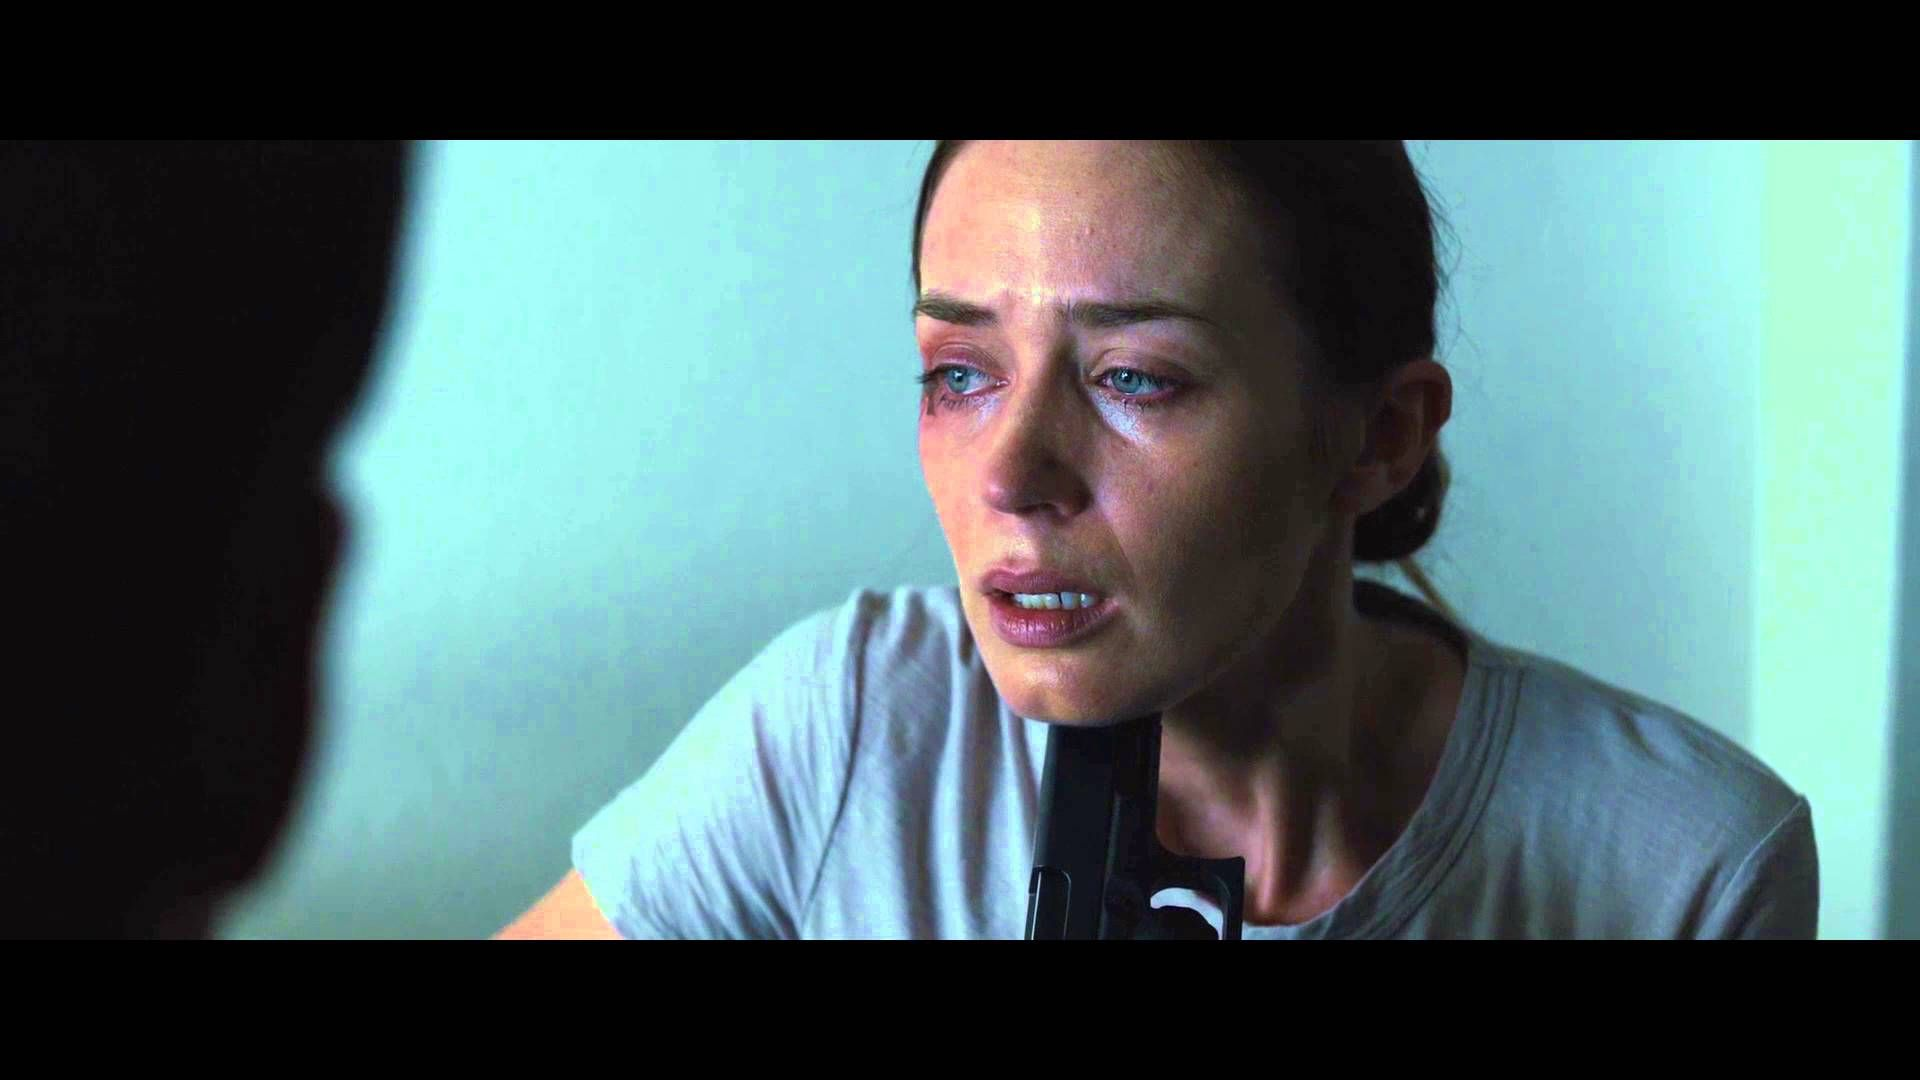 Sicario - Ending Scene | Thoughts  Wishes  Dreams  | Drama